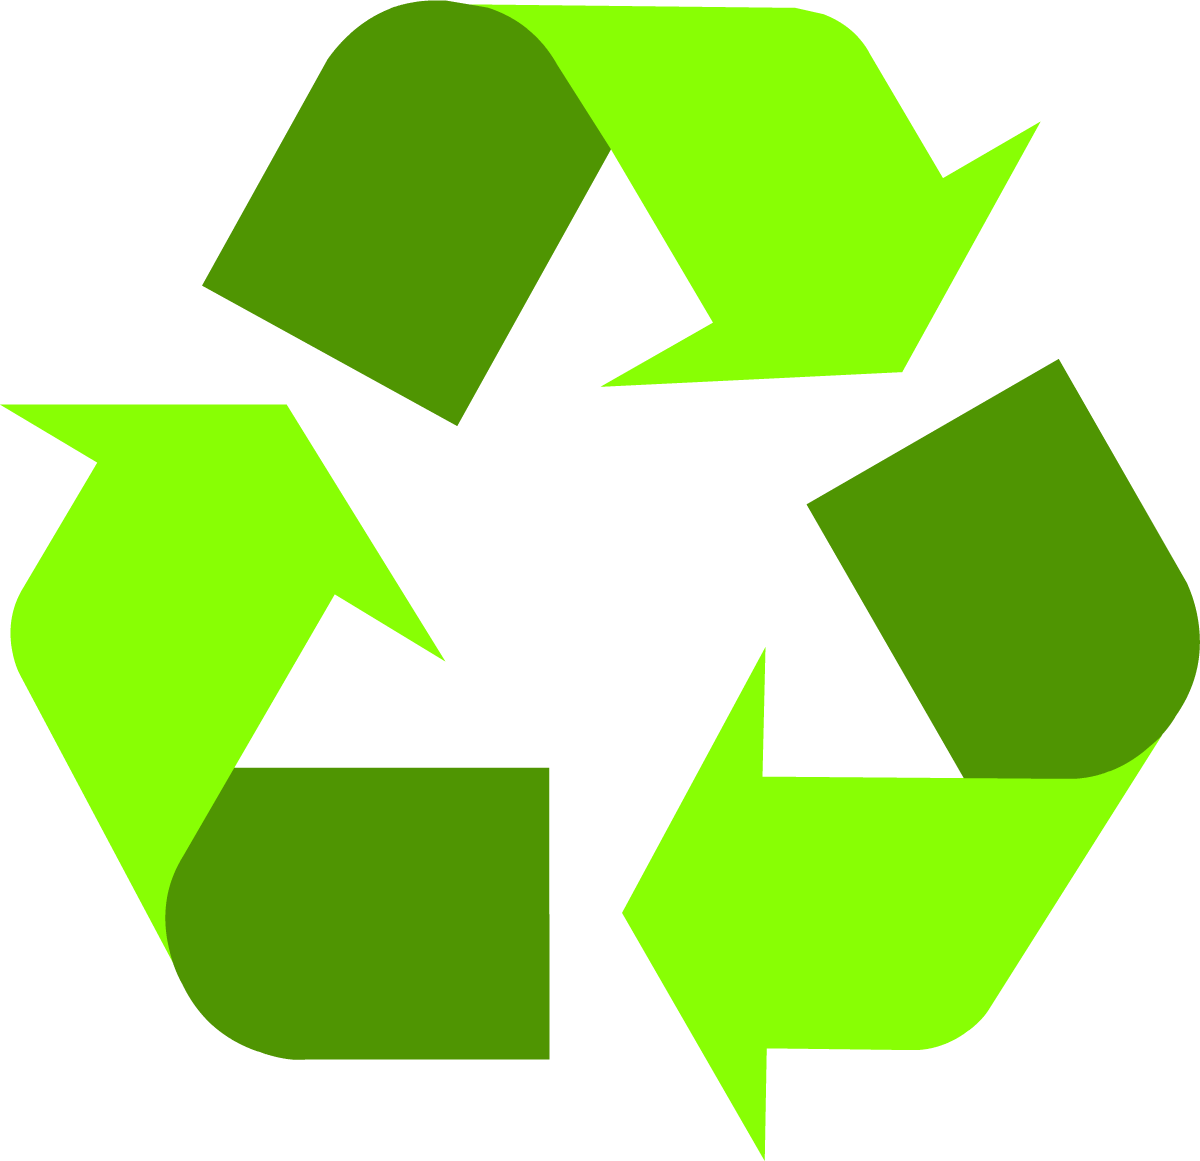 Recycle Symbol Recycling Green Icon Free Clipart HQ PNG Image